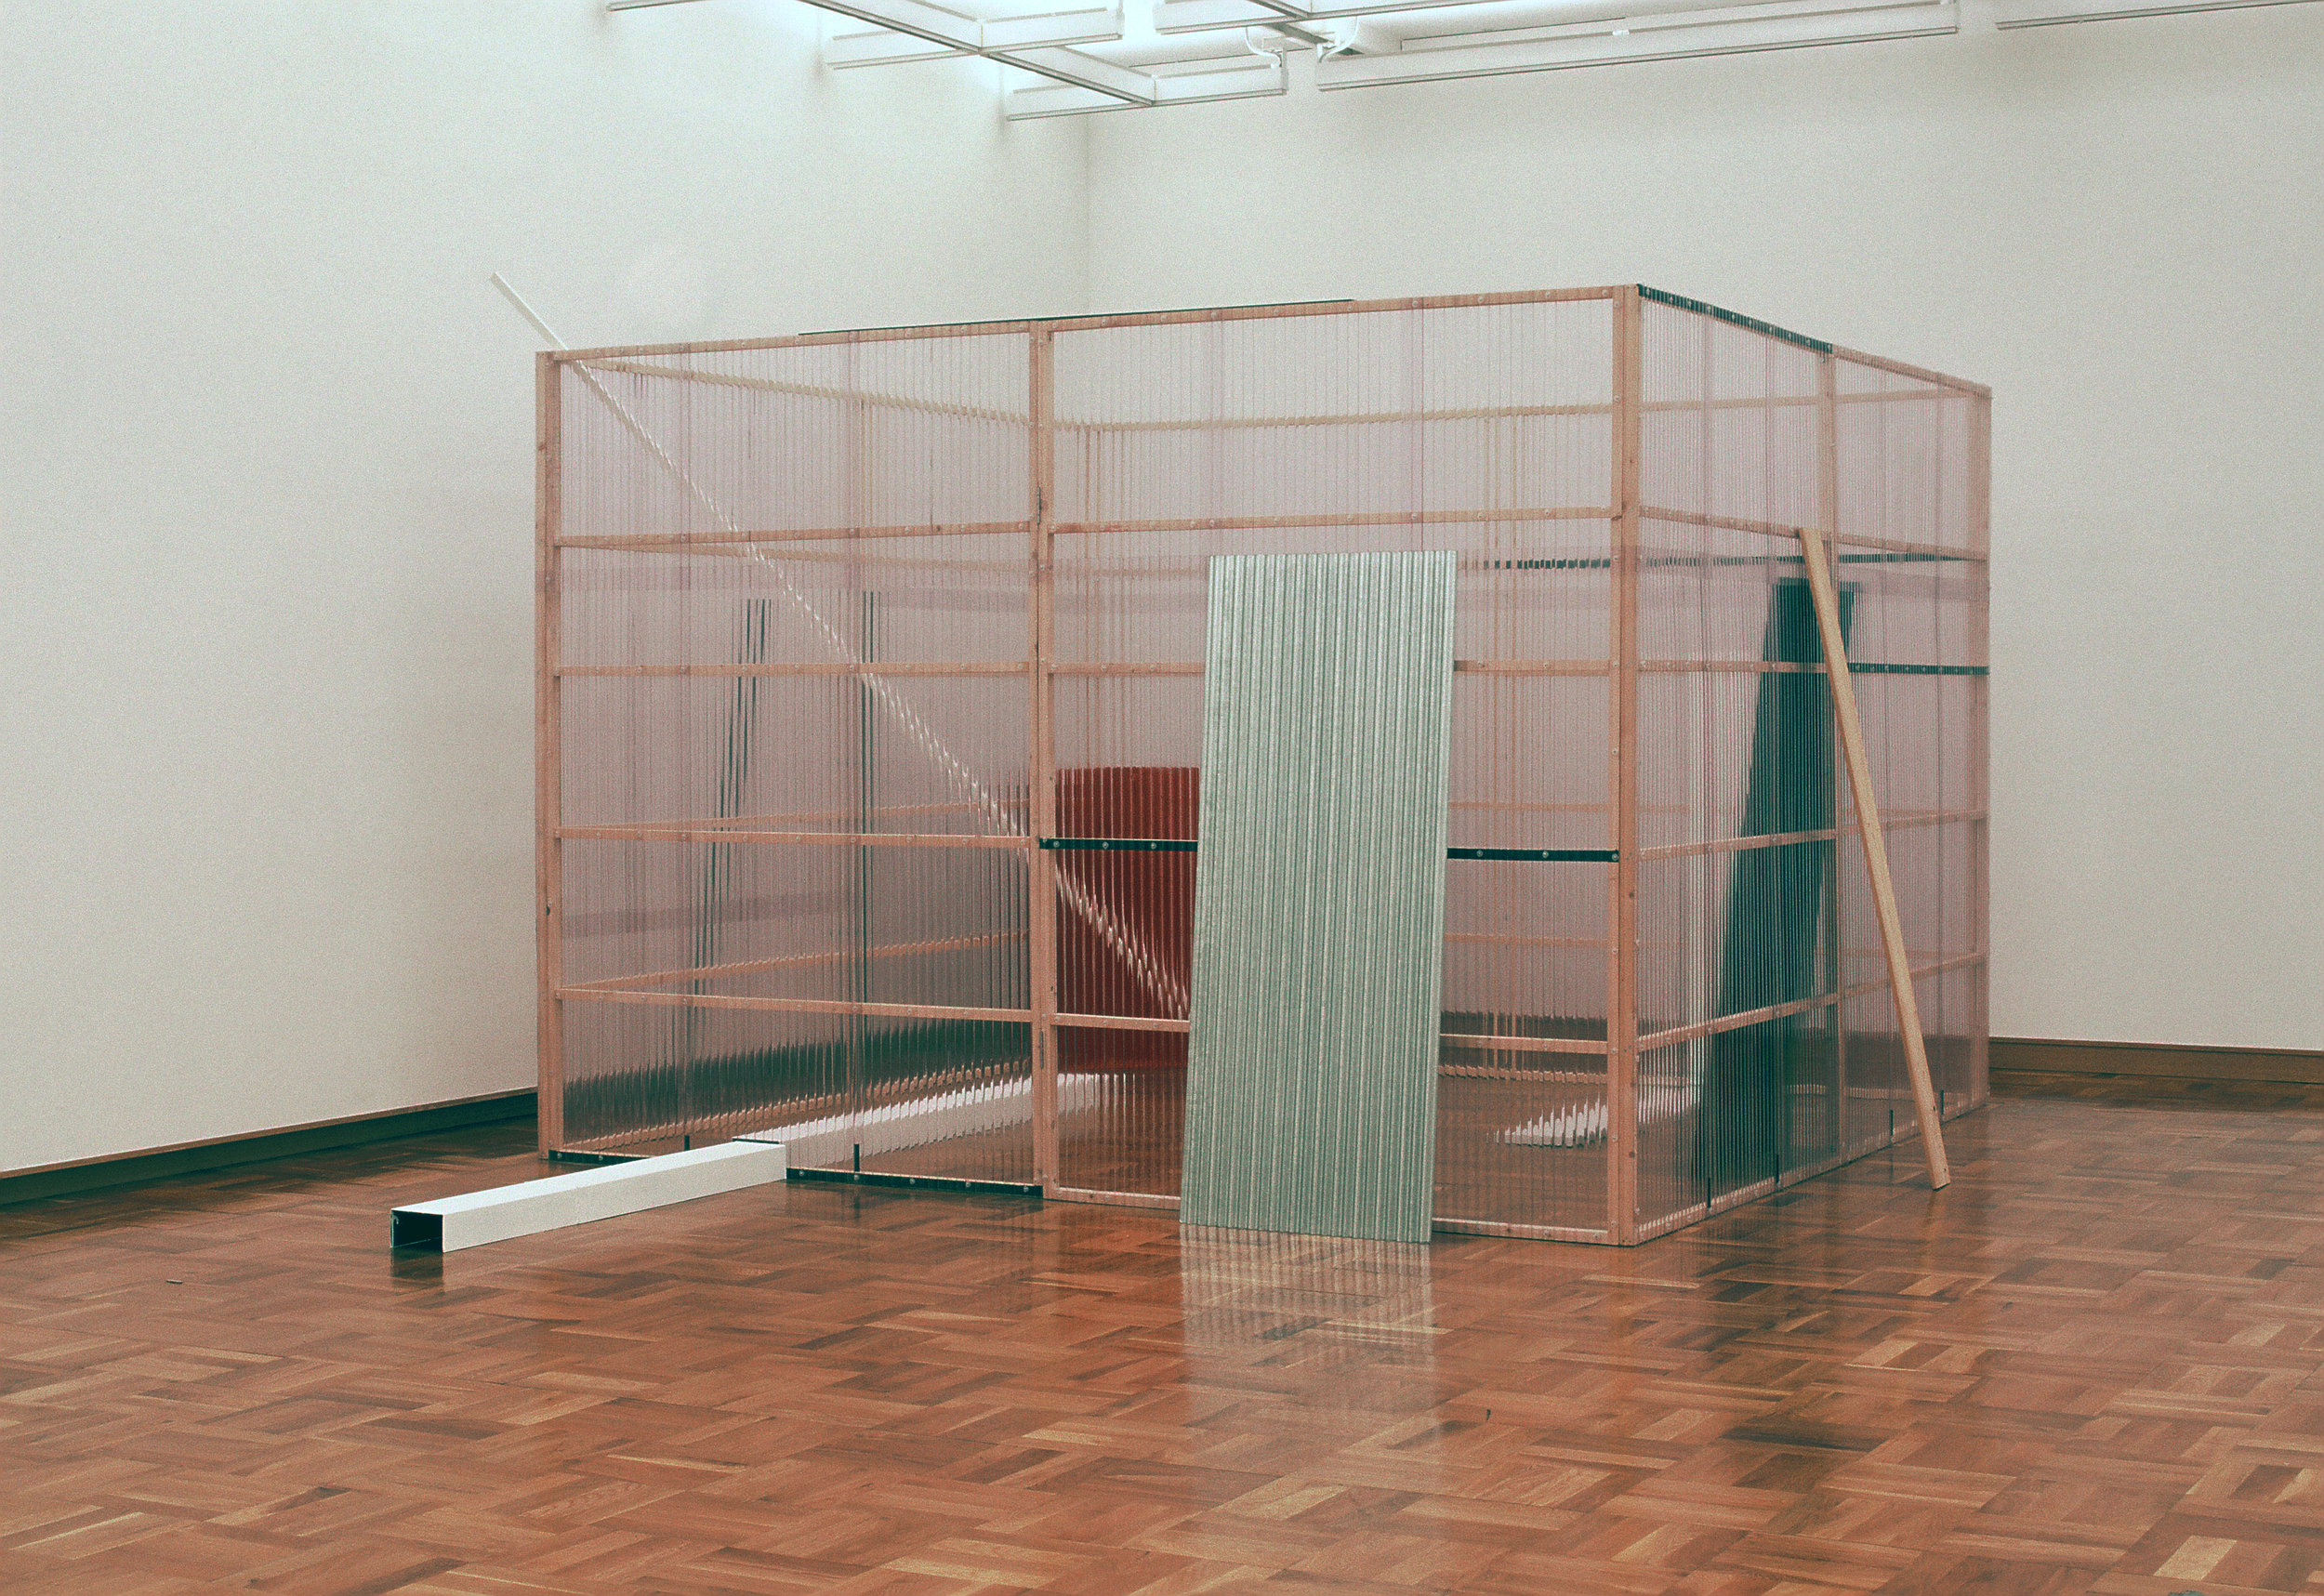 Concealed and Enclosed Surroundings , 1997 包囲周閉 ( Hōi Shūhei ) Wood, paint, metal bars, corrugated metal, corrugated plastic 250 x 340 x 340 centimeters Installation view,  Kishio Suga , Hiroshima City Museum of Contemporary Art, 1997 Photo: Tsuyoshi Satoh